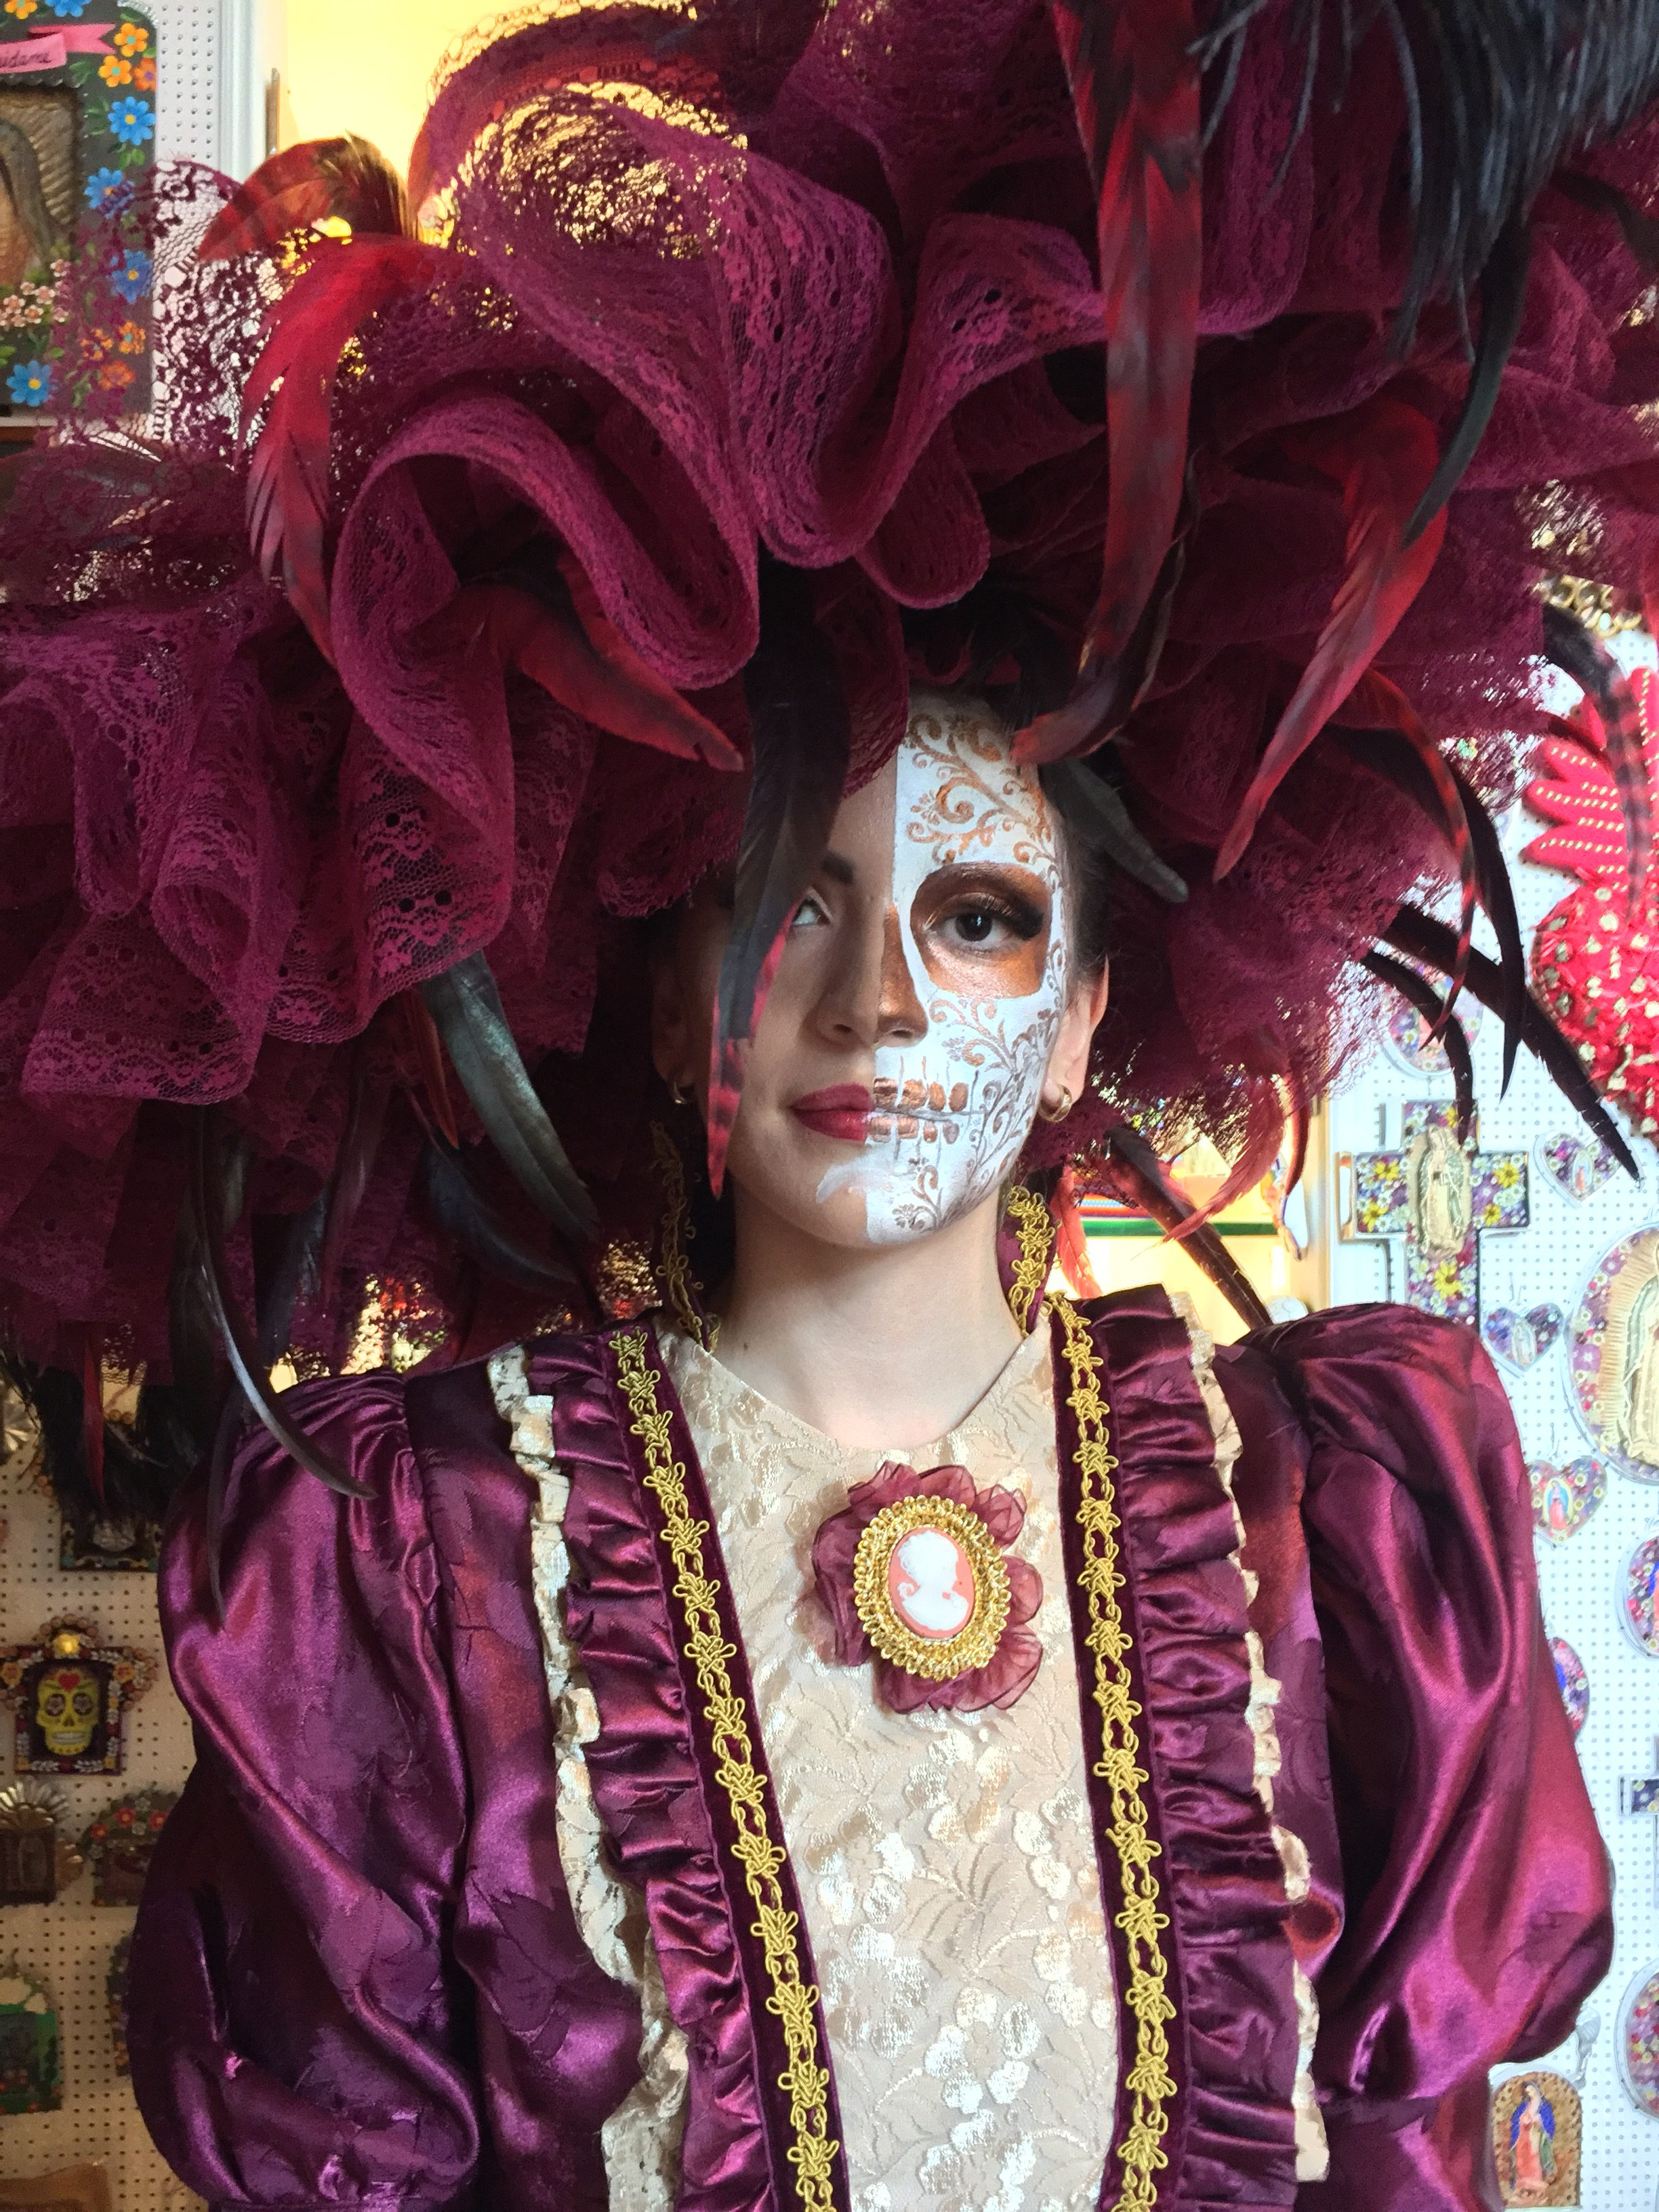 Life and death festival in xcaret